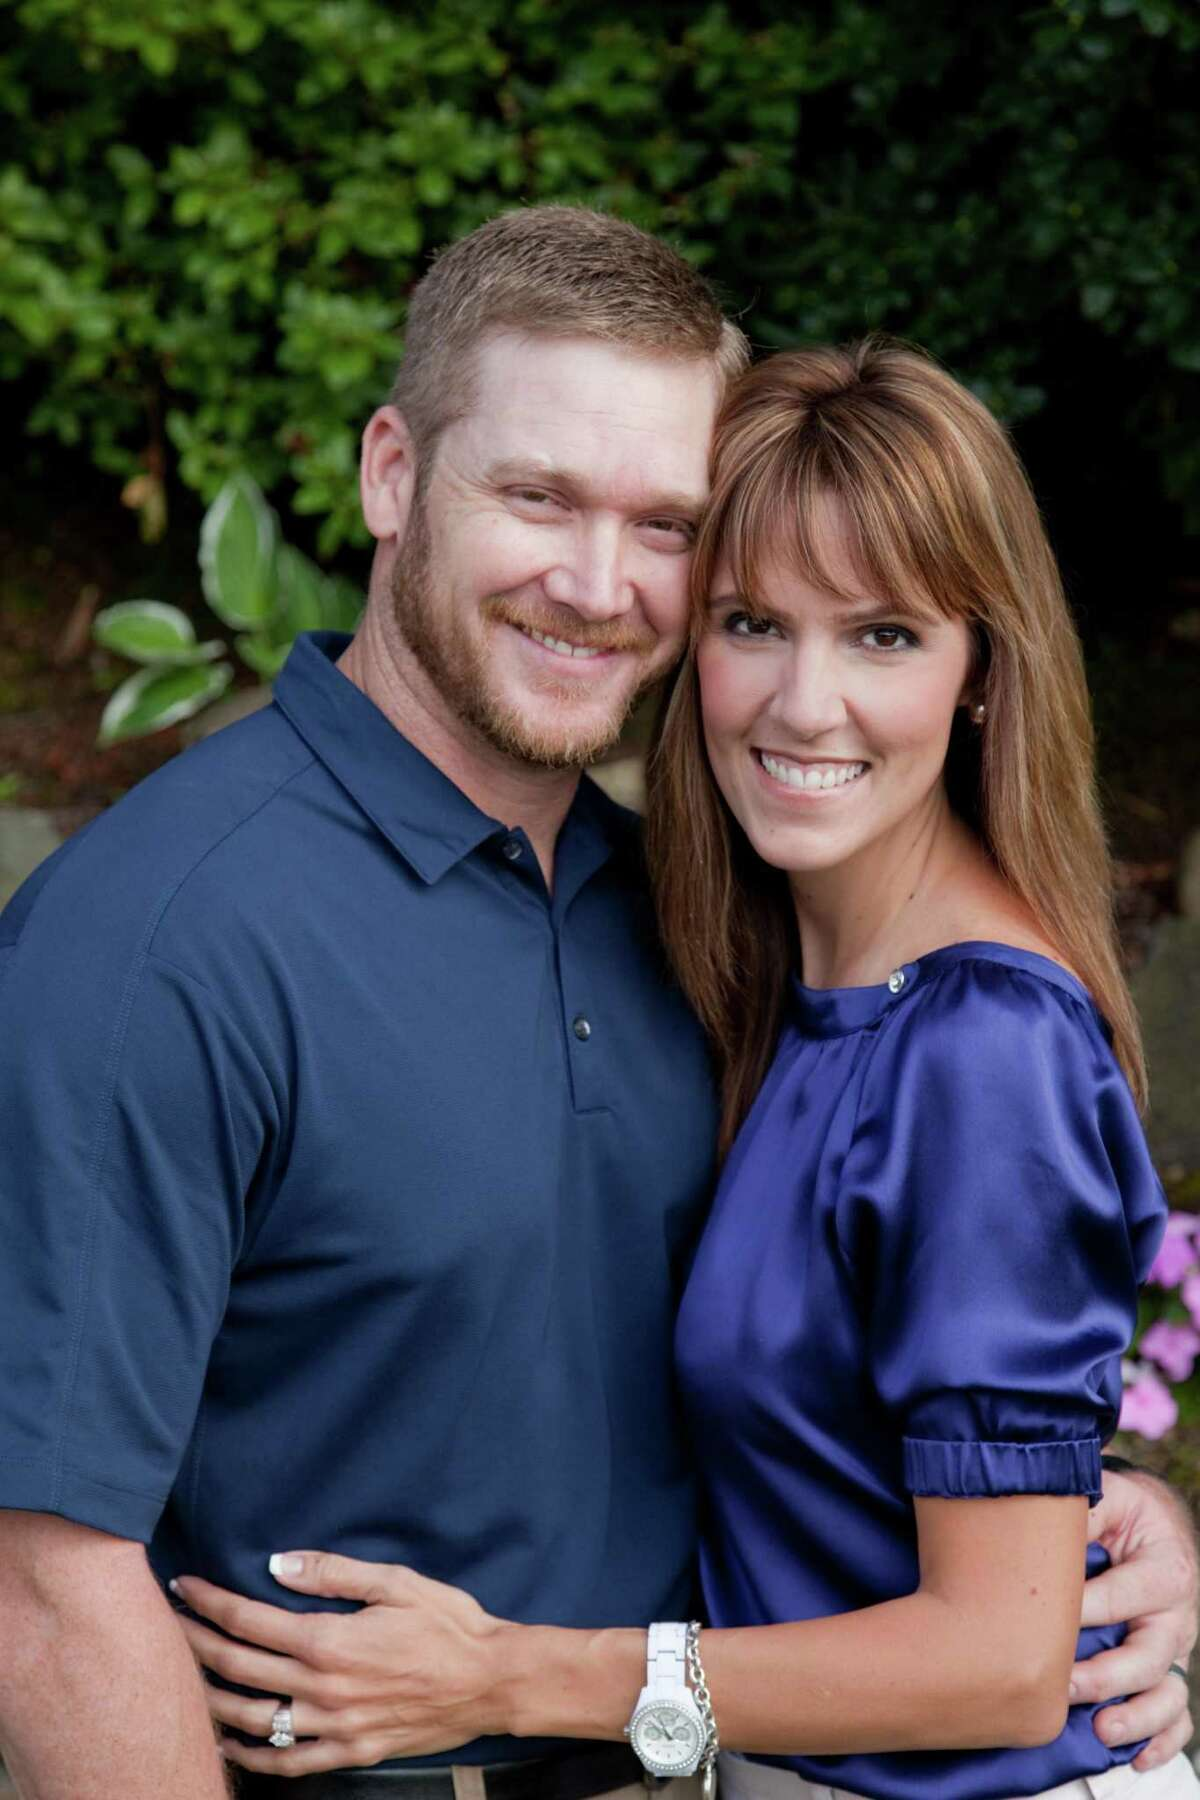 """Taya Kyle, widow of """"American Sniper"""" Chris Kyle, announced a $200,000 grant to fund for couples workshops for military and first responders in conjunction with UT-Austin and Baylor University."""